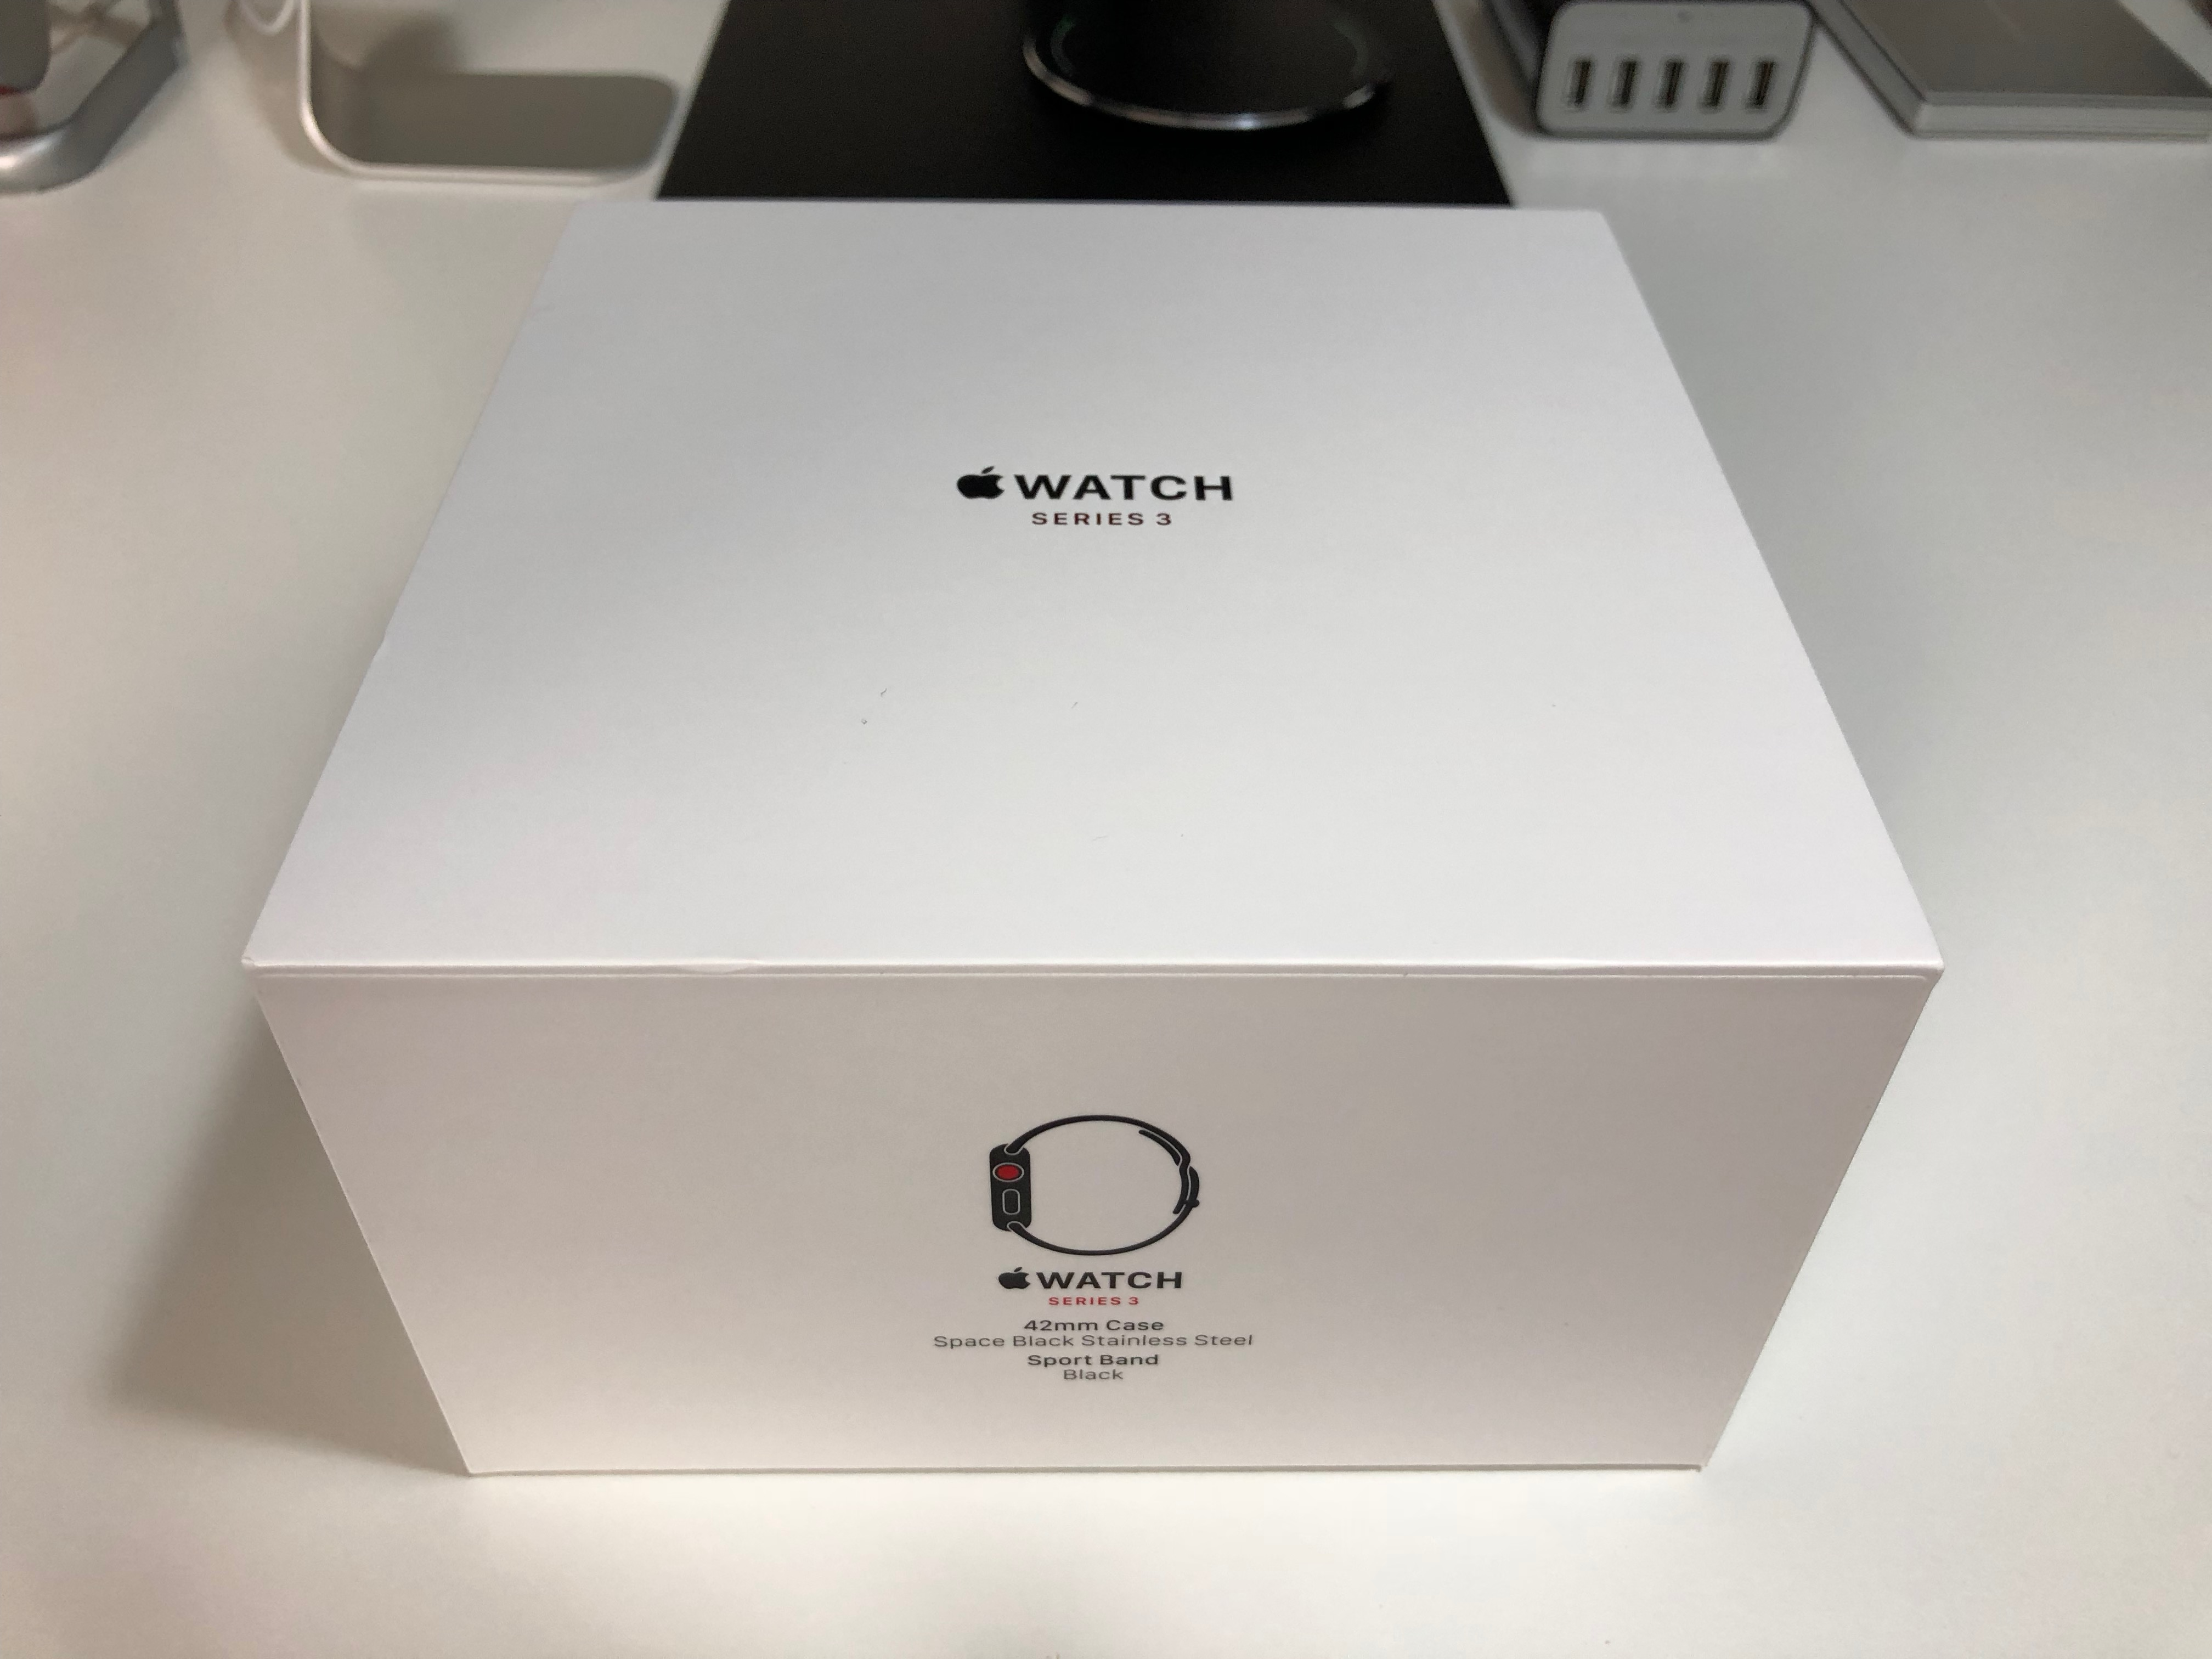 Apple watch series 3 stainless steel space black running there is no plastic box for the apple watch anymore which was disappointing as this was included with the launch apple watches including the sports thecheapjerseys Image collections